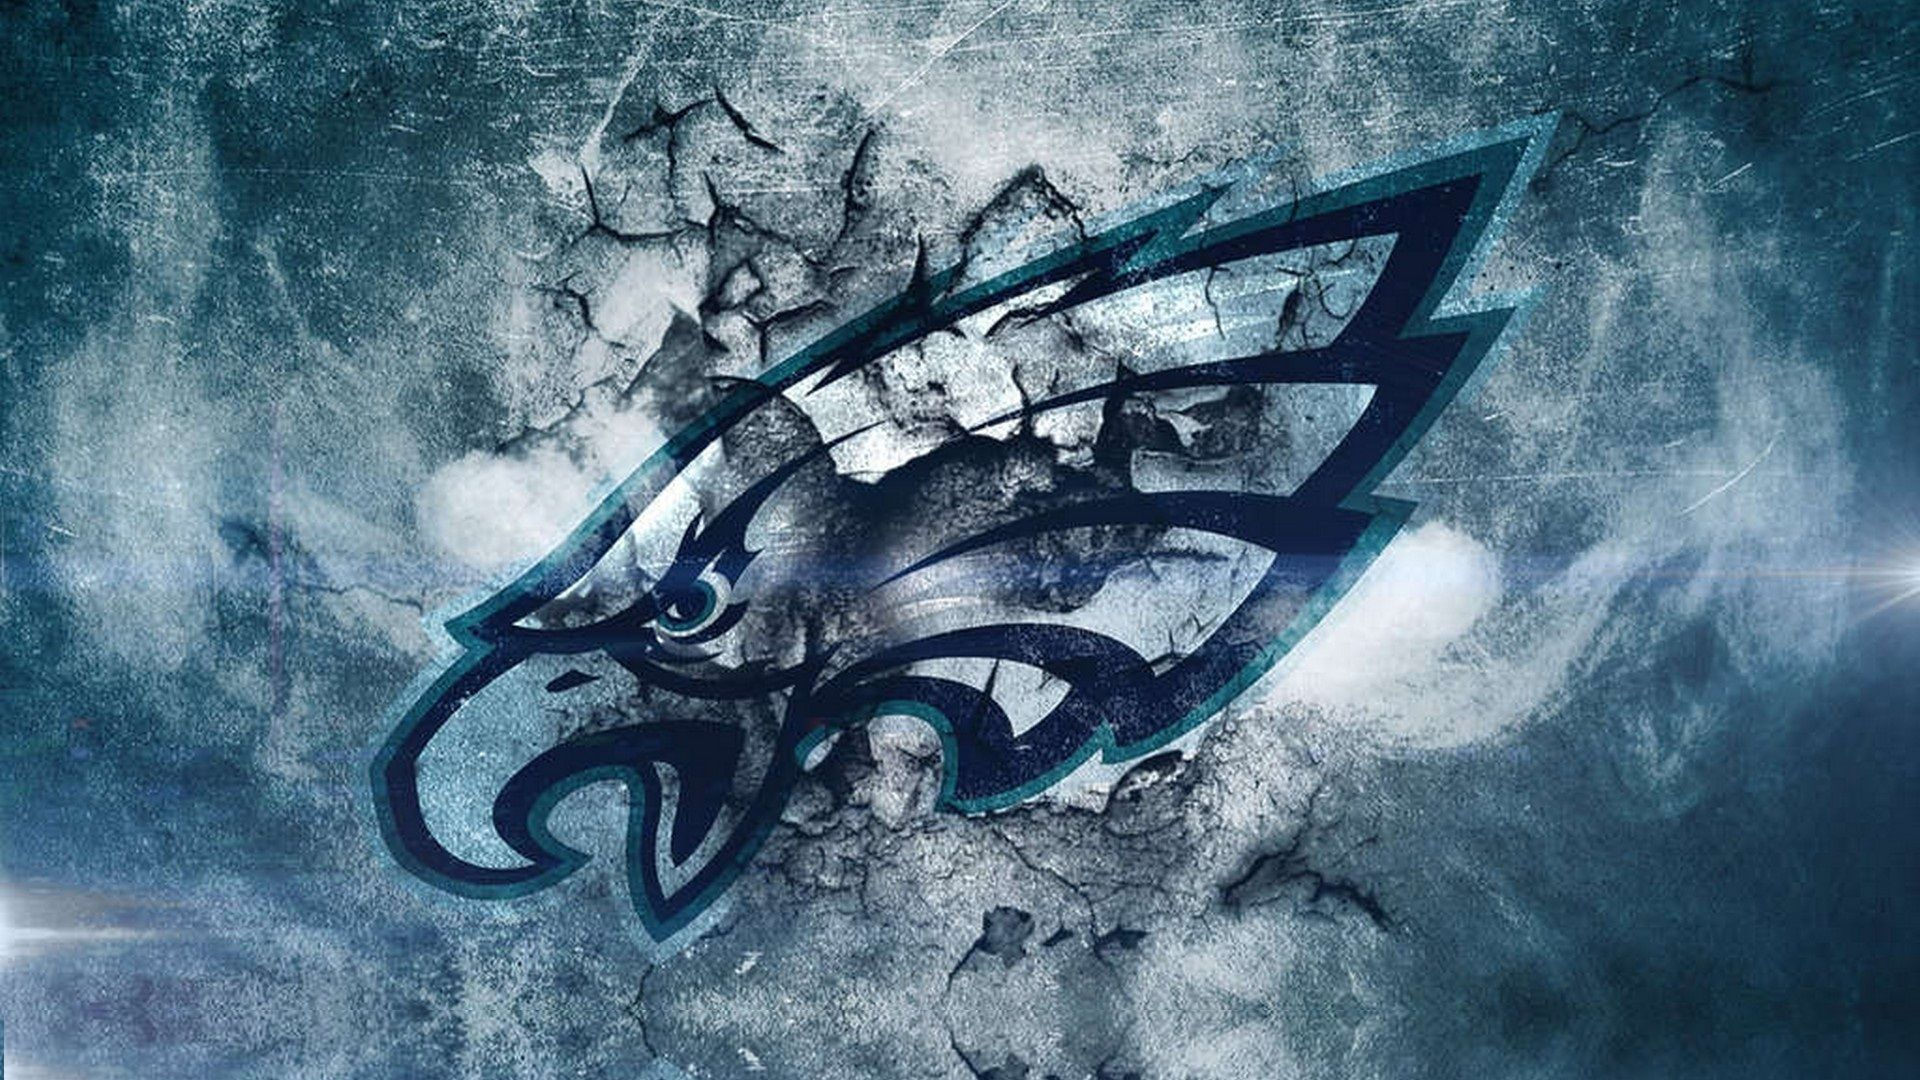 Nfl Wallpapers Philadelphia Eagles Wallpaper Nfl Football Wallpaper Philadelphia Eagles